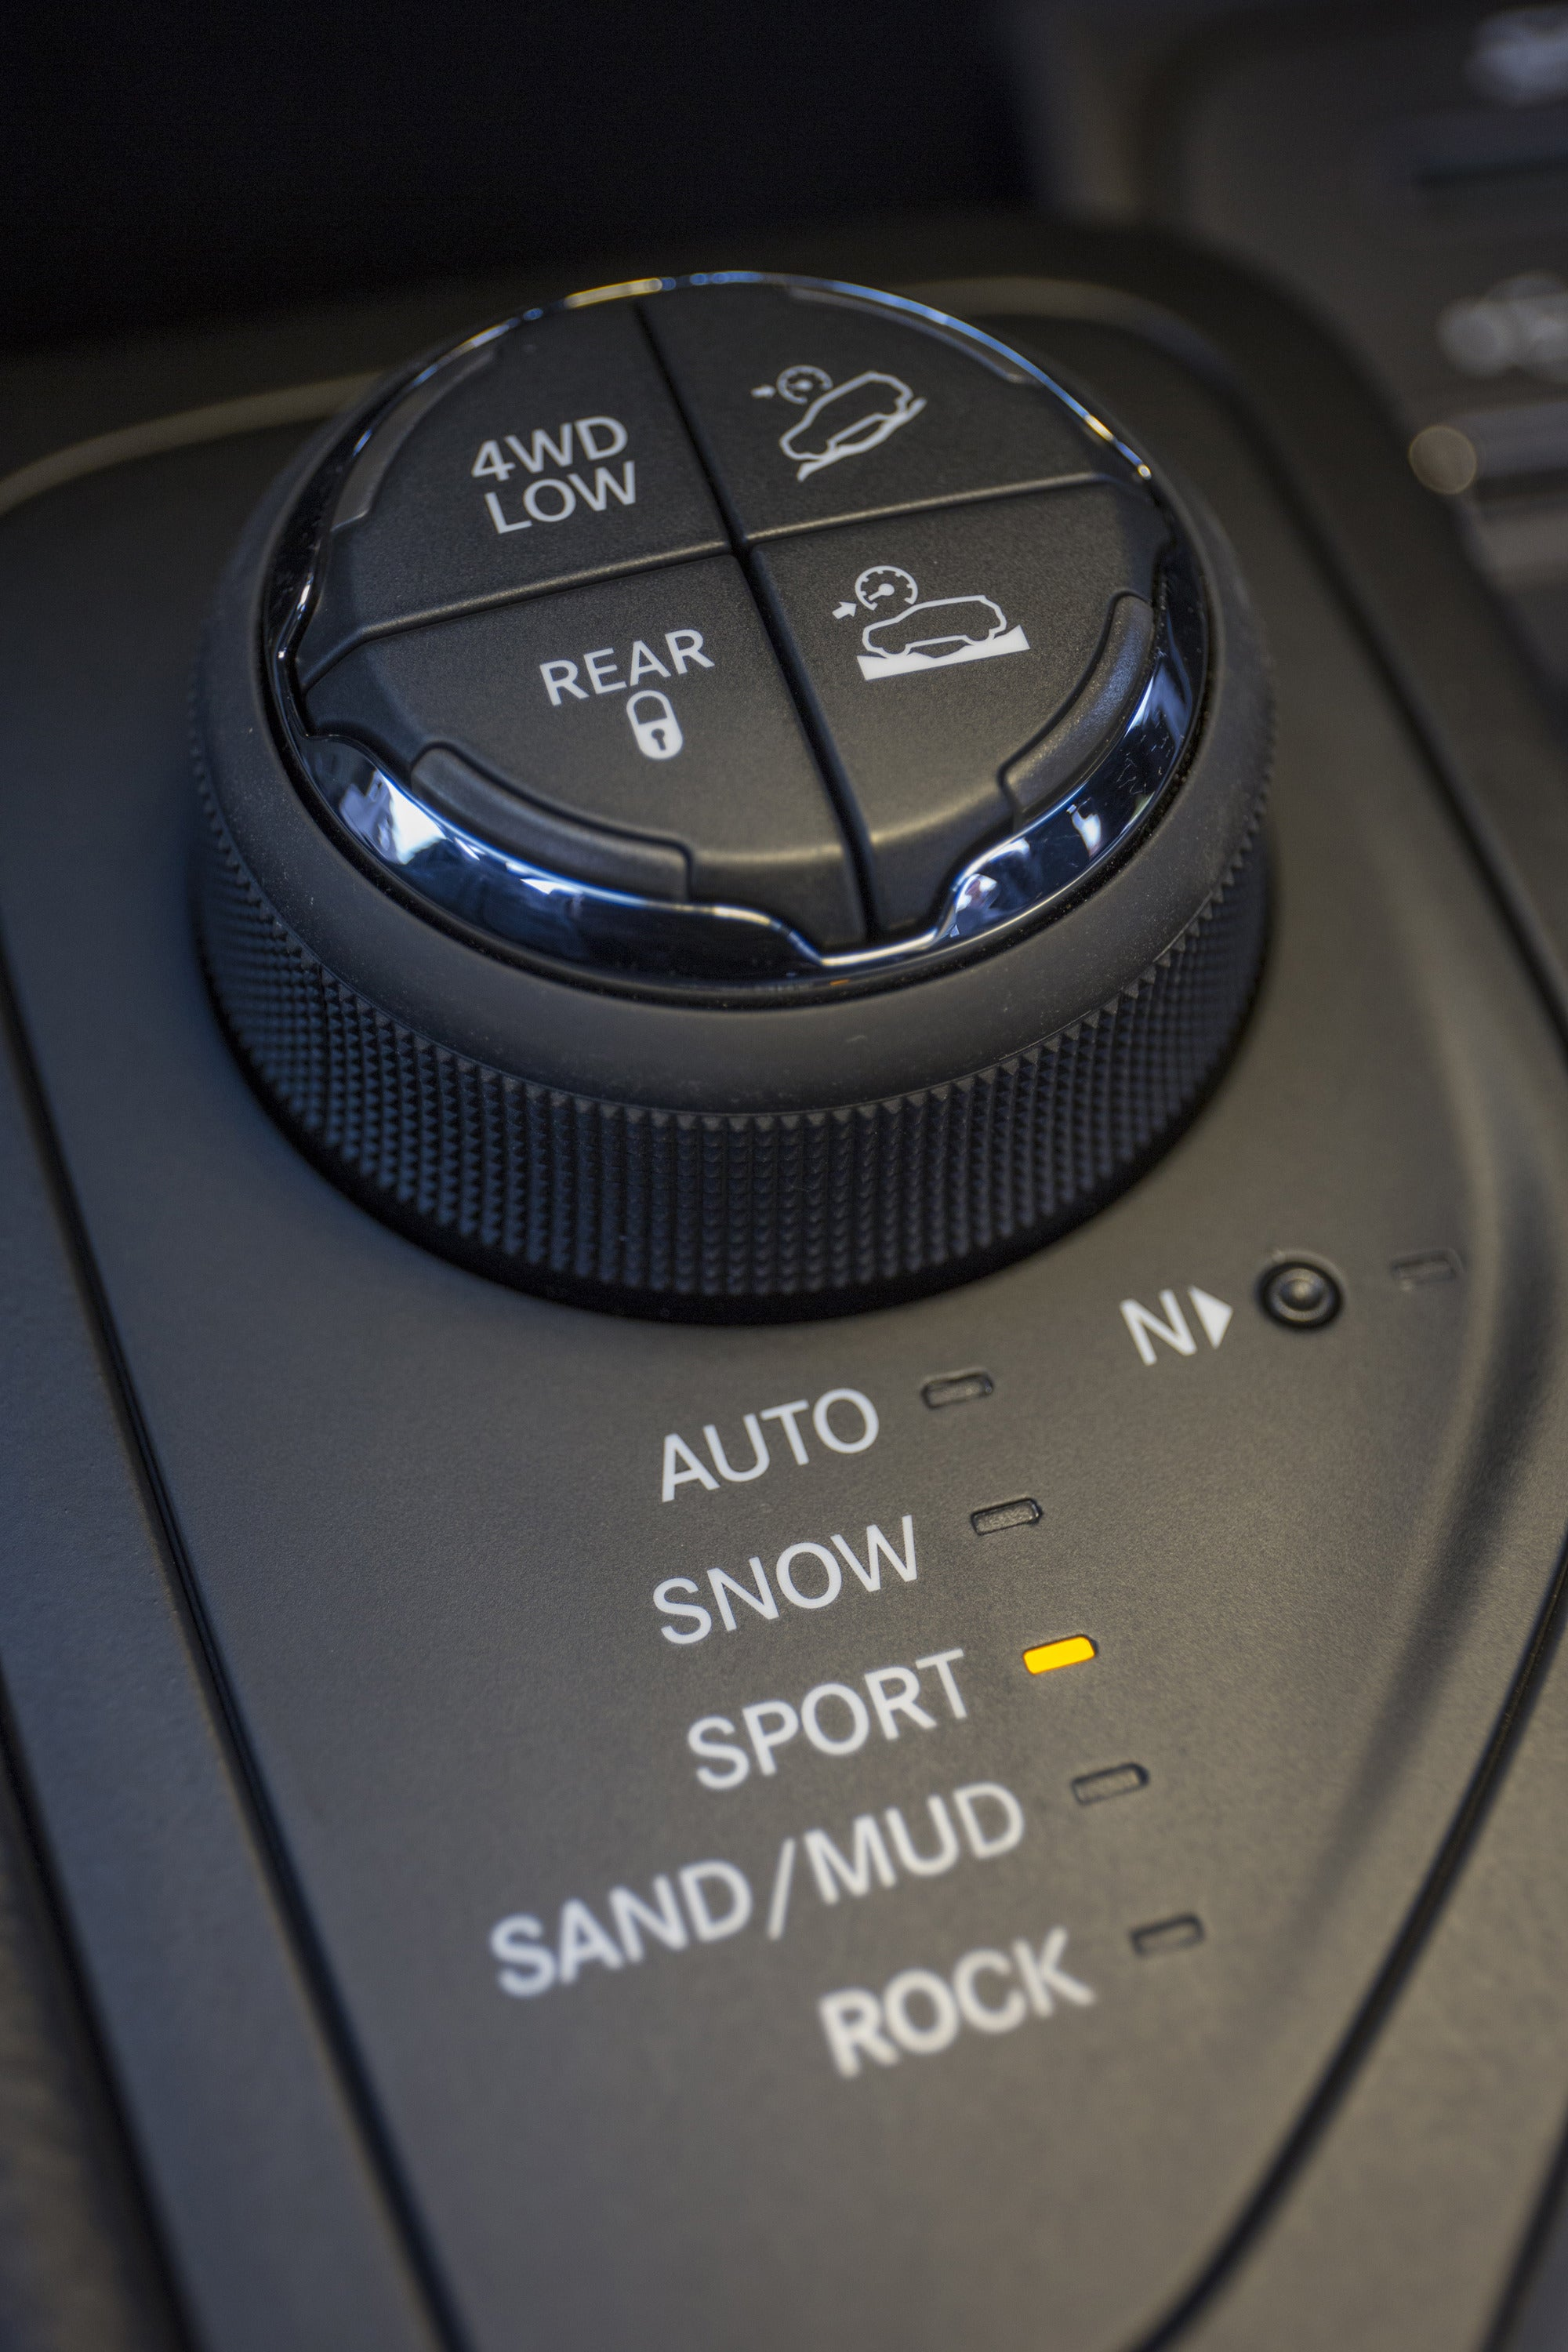 Ford My Key >> Snow, sand, mud, rocks: The 2014 Jeep Cherokee Trailhawk ...